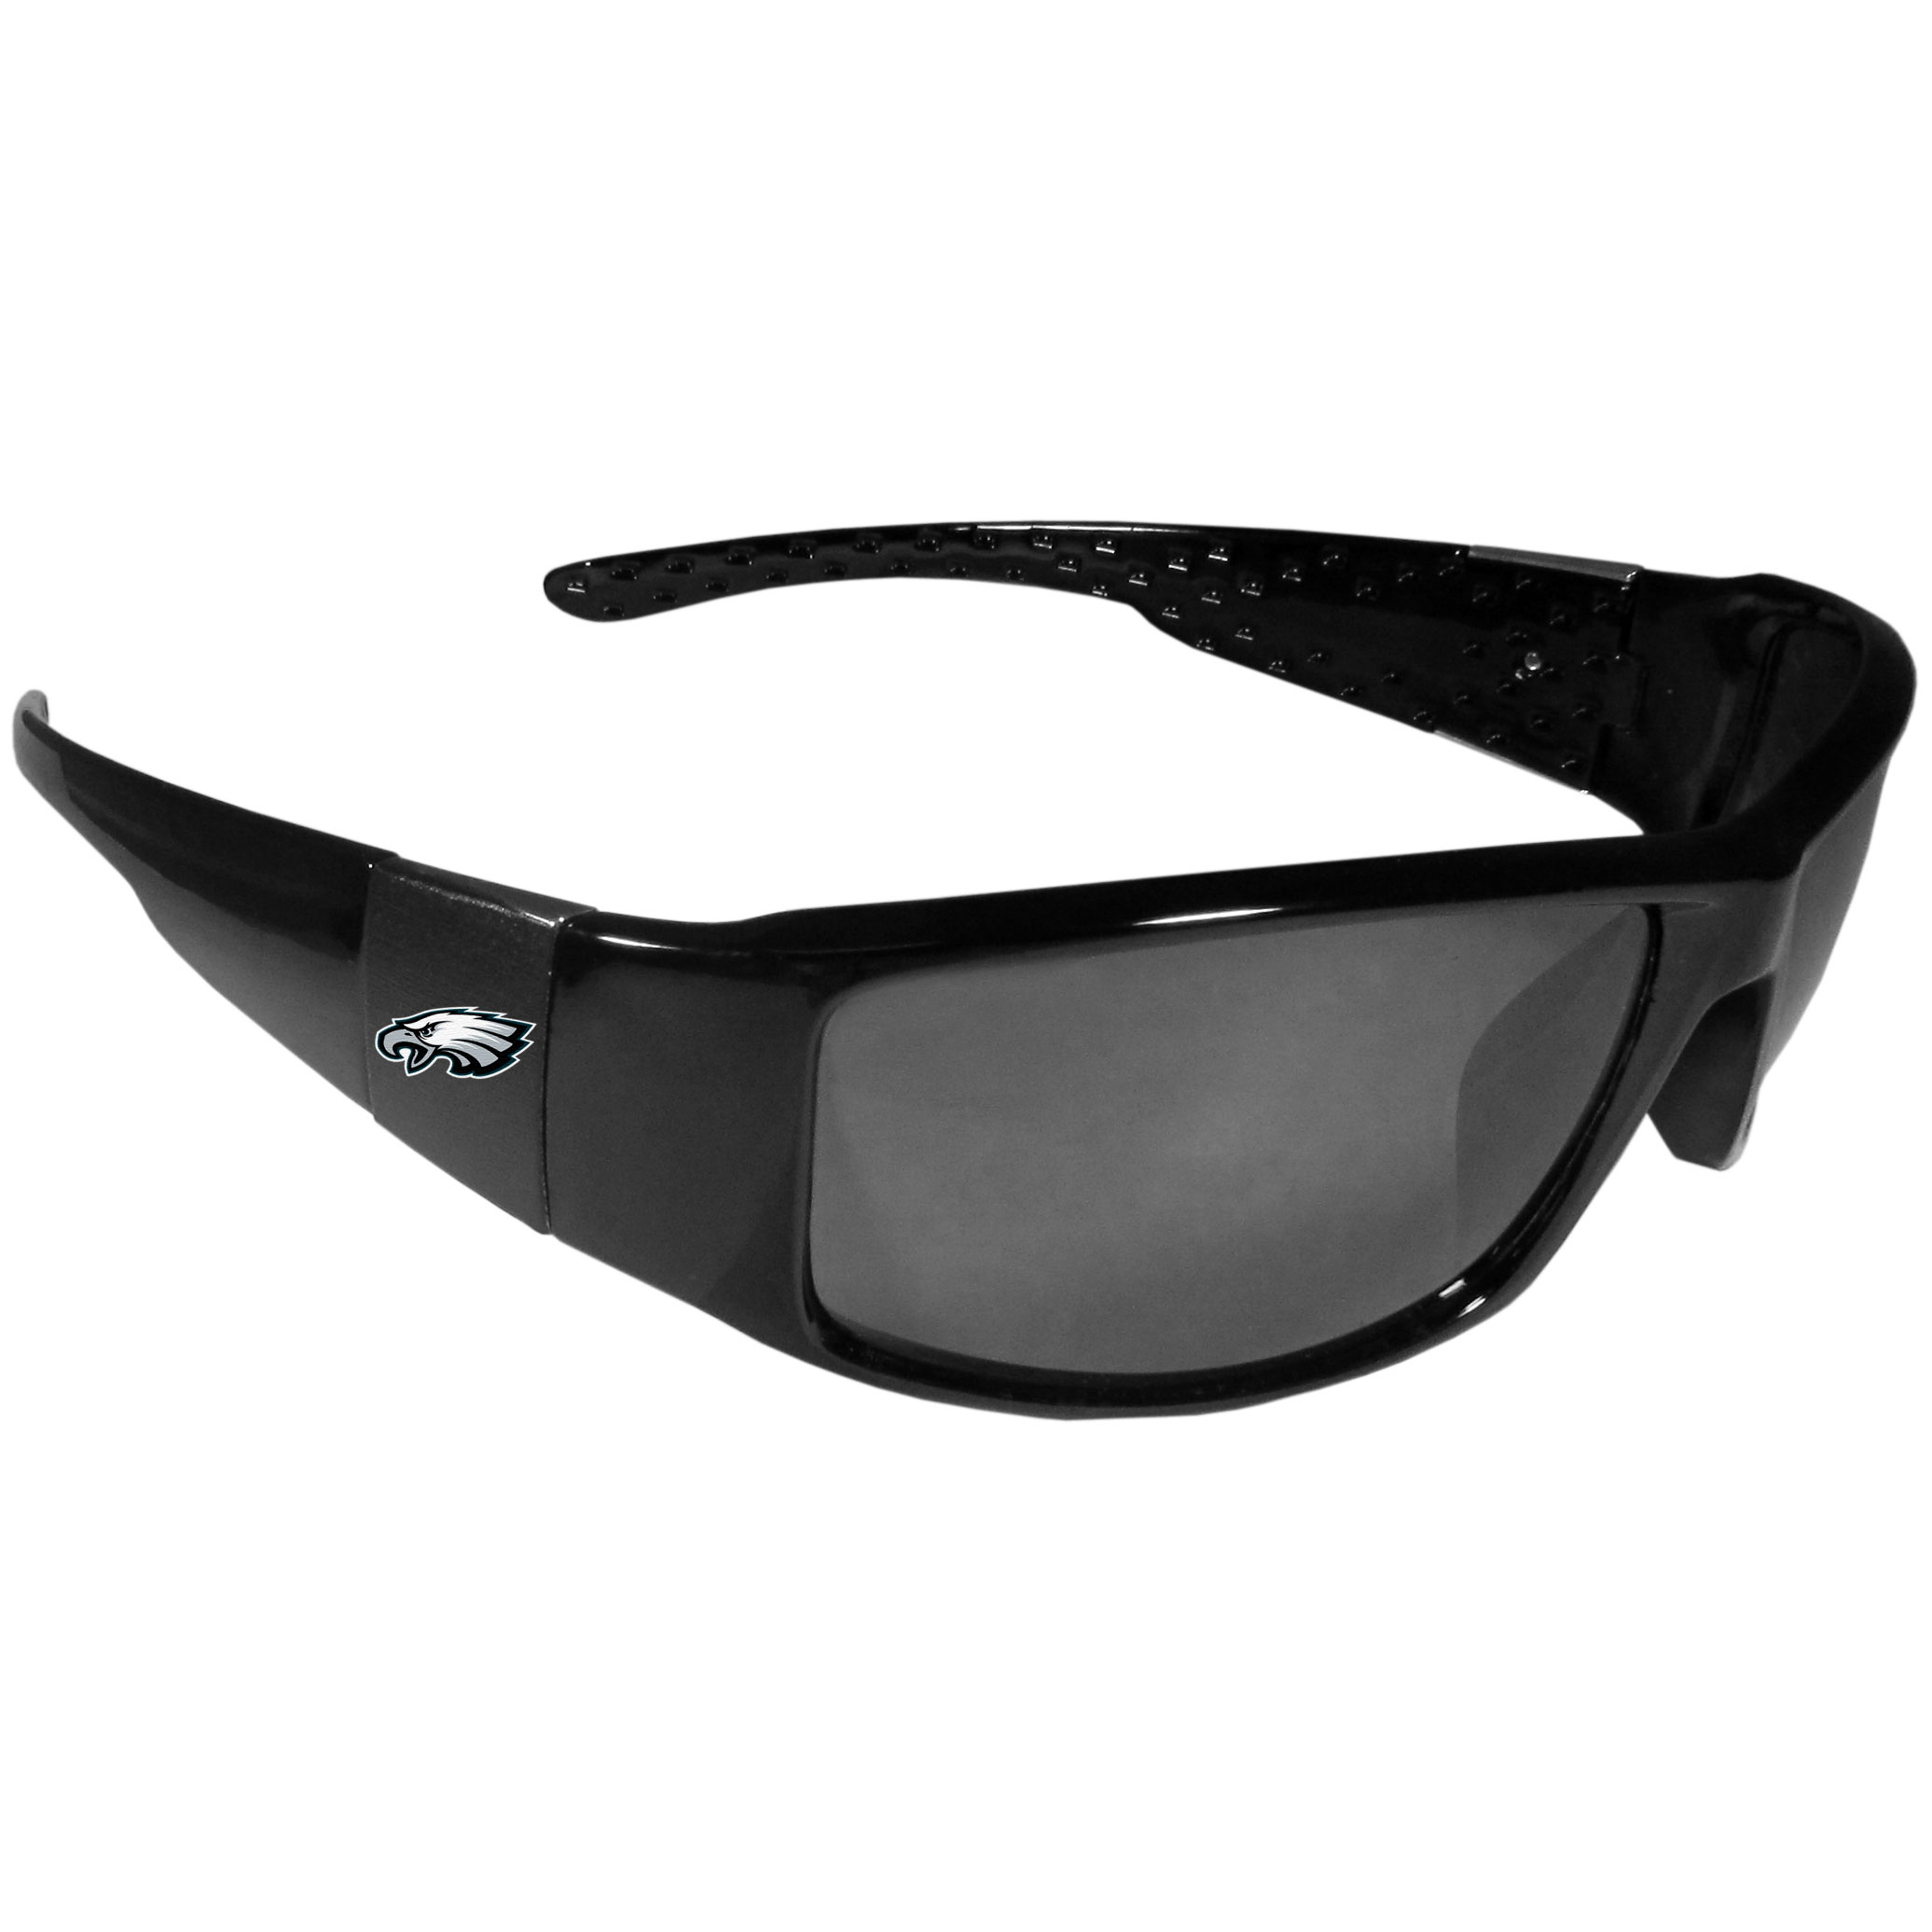 Philadelphia Eagles Black Wrap Sunglasses - These designer inspired frames have a sleek look in all black with  Philadelphia Eagles shields on each arm with a printed logo. The shades are perfect for any outdoor activity like; golfing, driving, hiking, fishing or cheering on the team at a tailgating event or at a home game day BBQ with a lens rating of 100% UVA/UVB for maximum UV protection. The high-quality frames are as durable as they are fashionable and with their classic look they are the perfect fan accessory that can be worn everyday for every occasion.